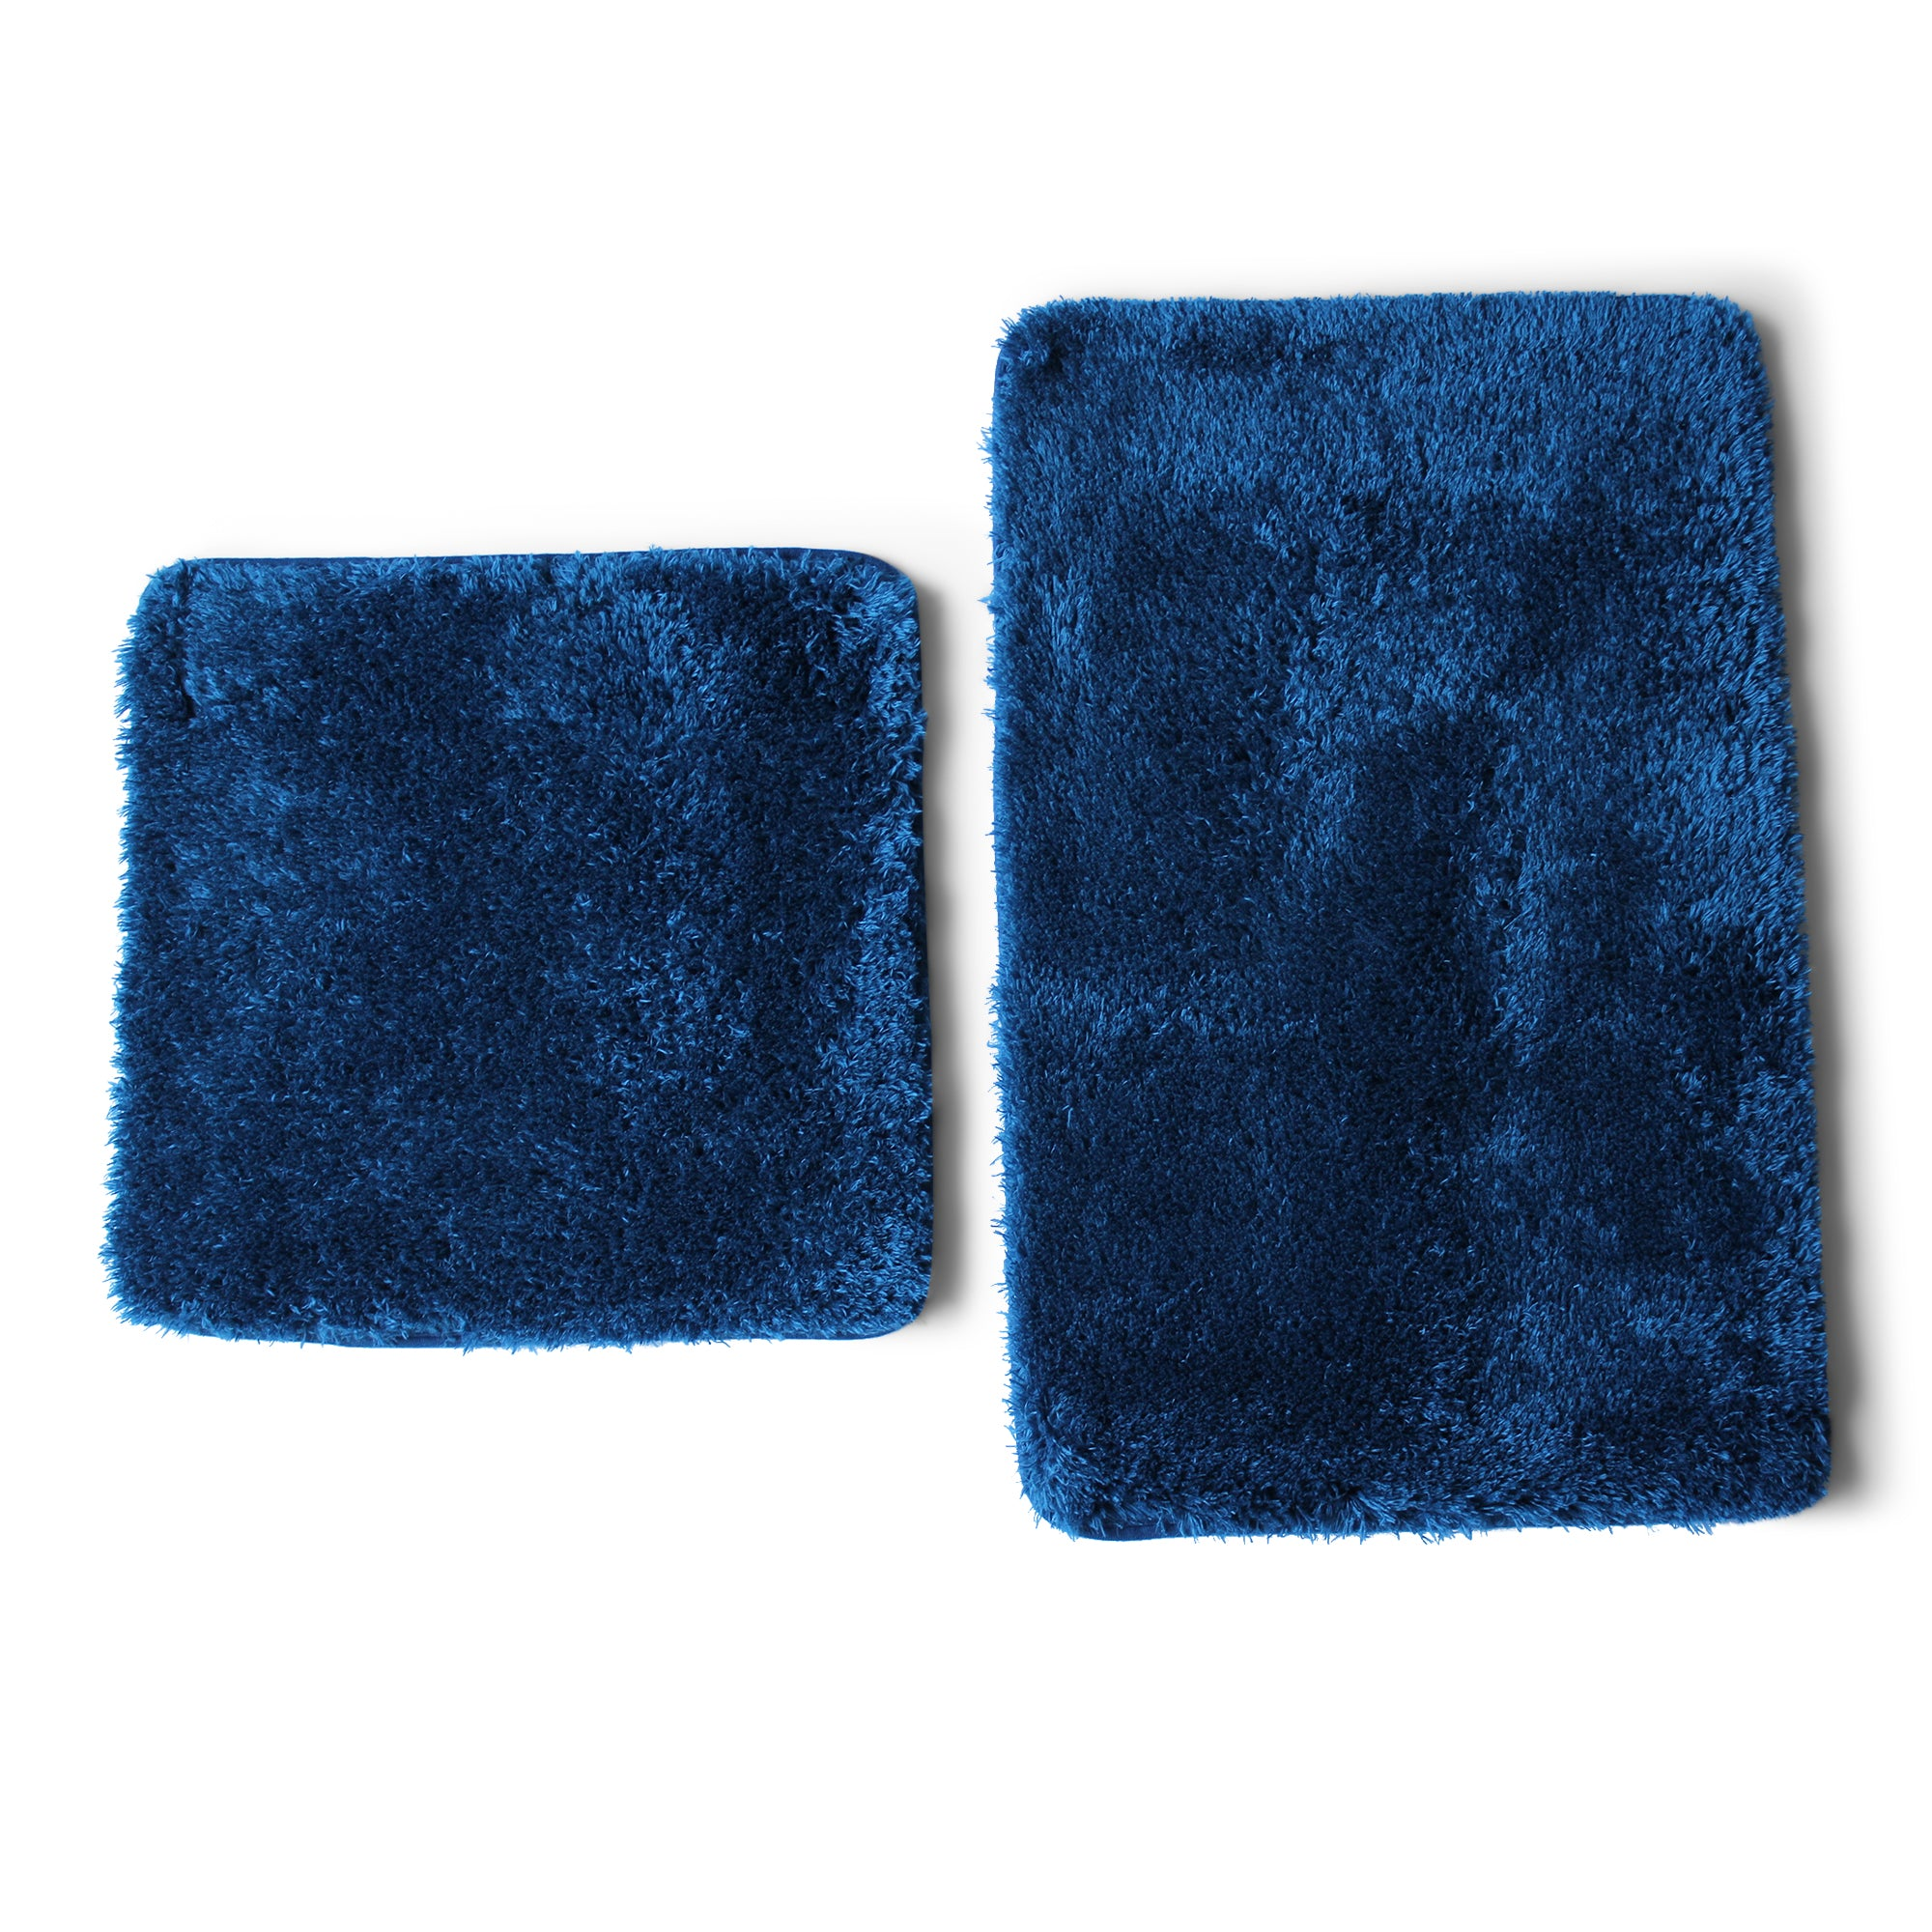 Lush Living - Bath-Boutique Spa Shaggy Bath Mat Set - 2 Piece - Navy